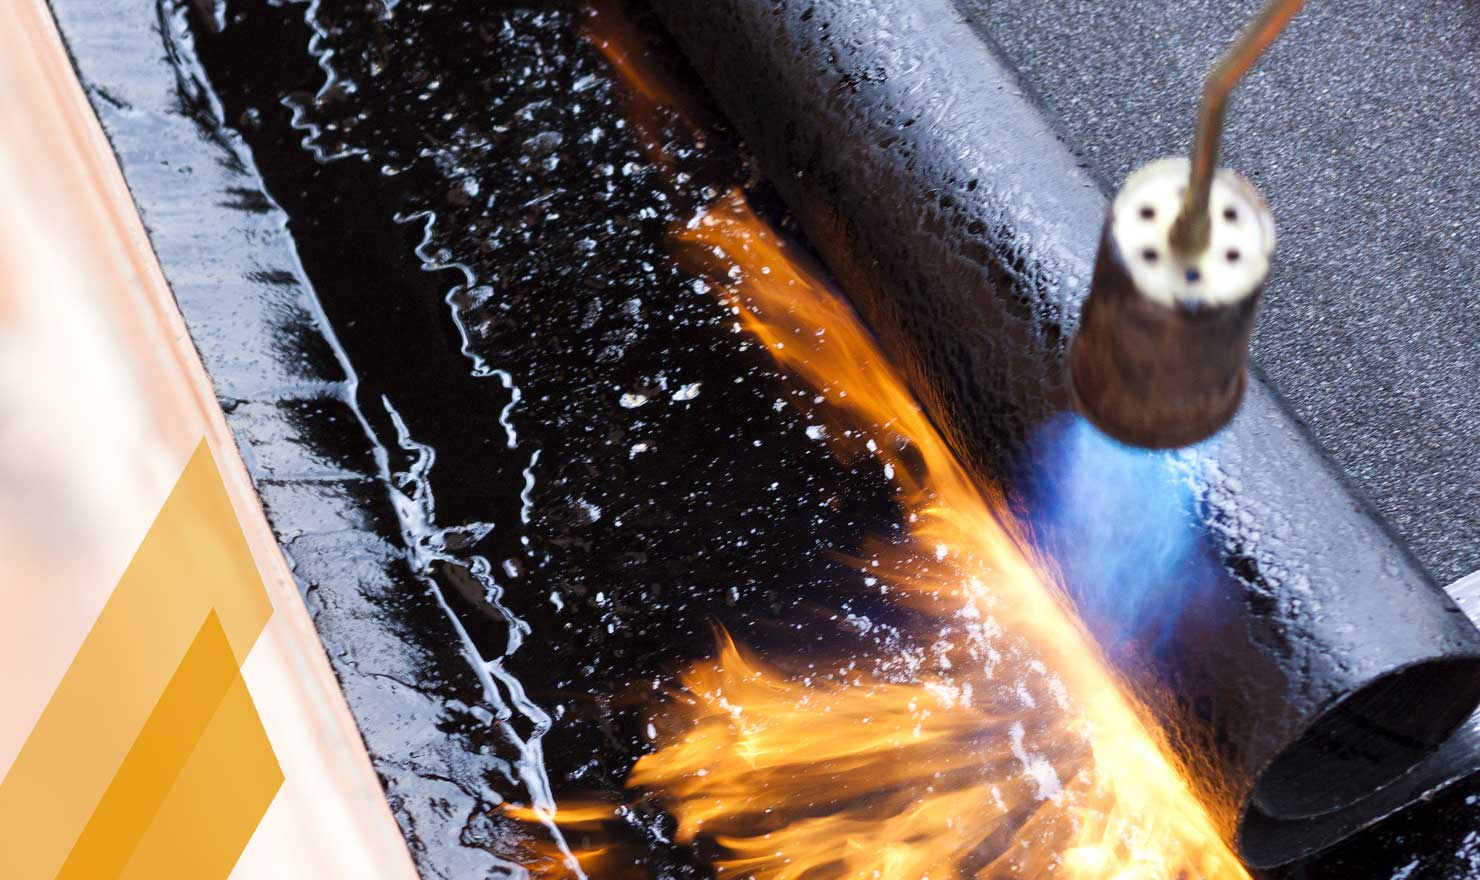 Reroofing Roofer in Edmonton by MD Roofing - image of flame torch installing flat SBS roofing